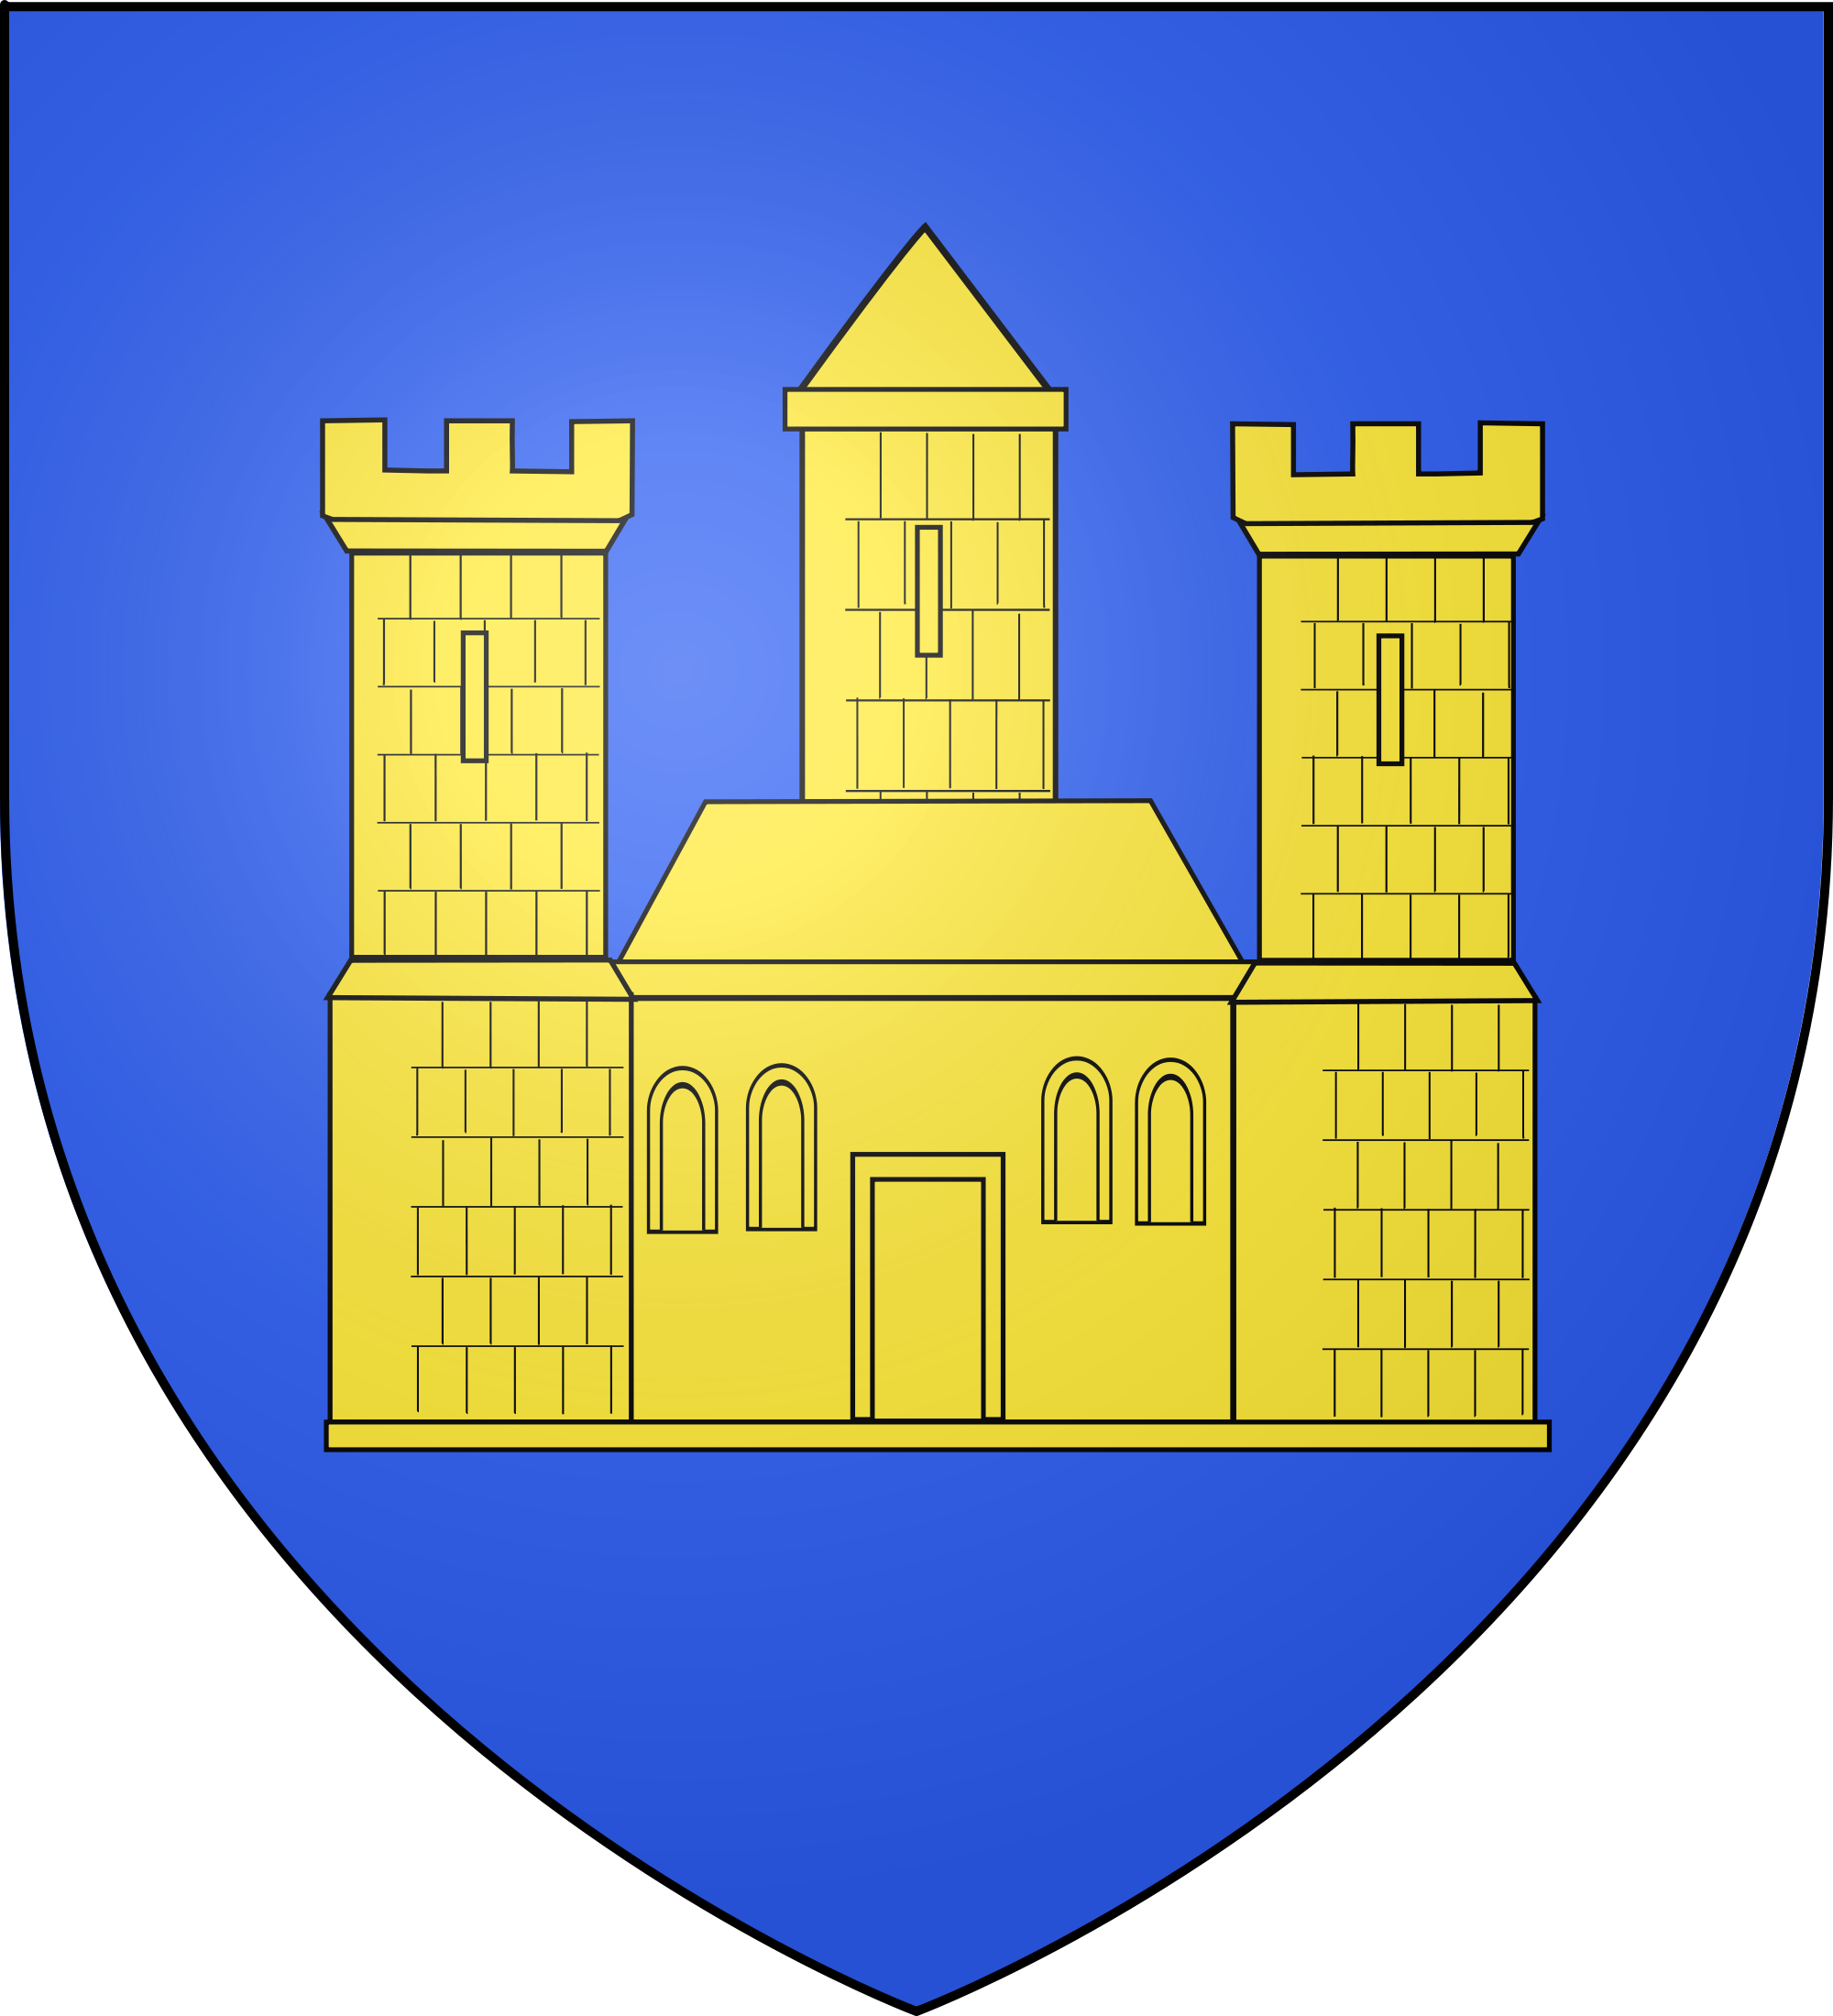 File:Blason Lauterbourg 67.svg.